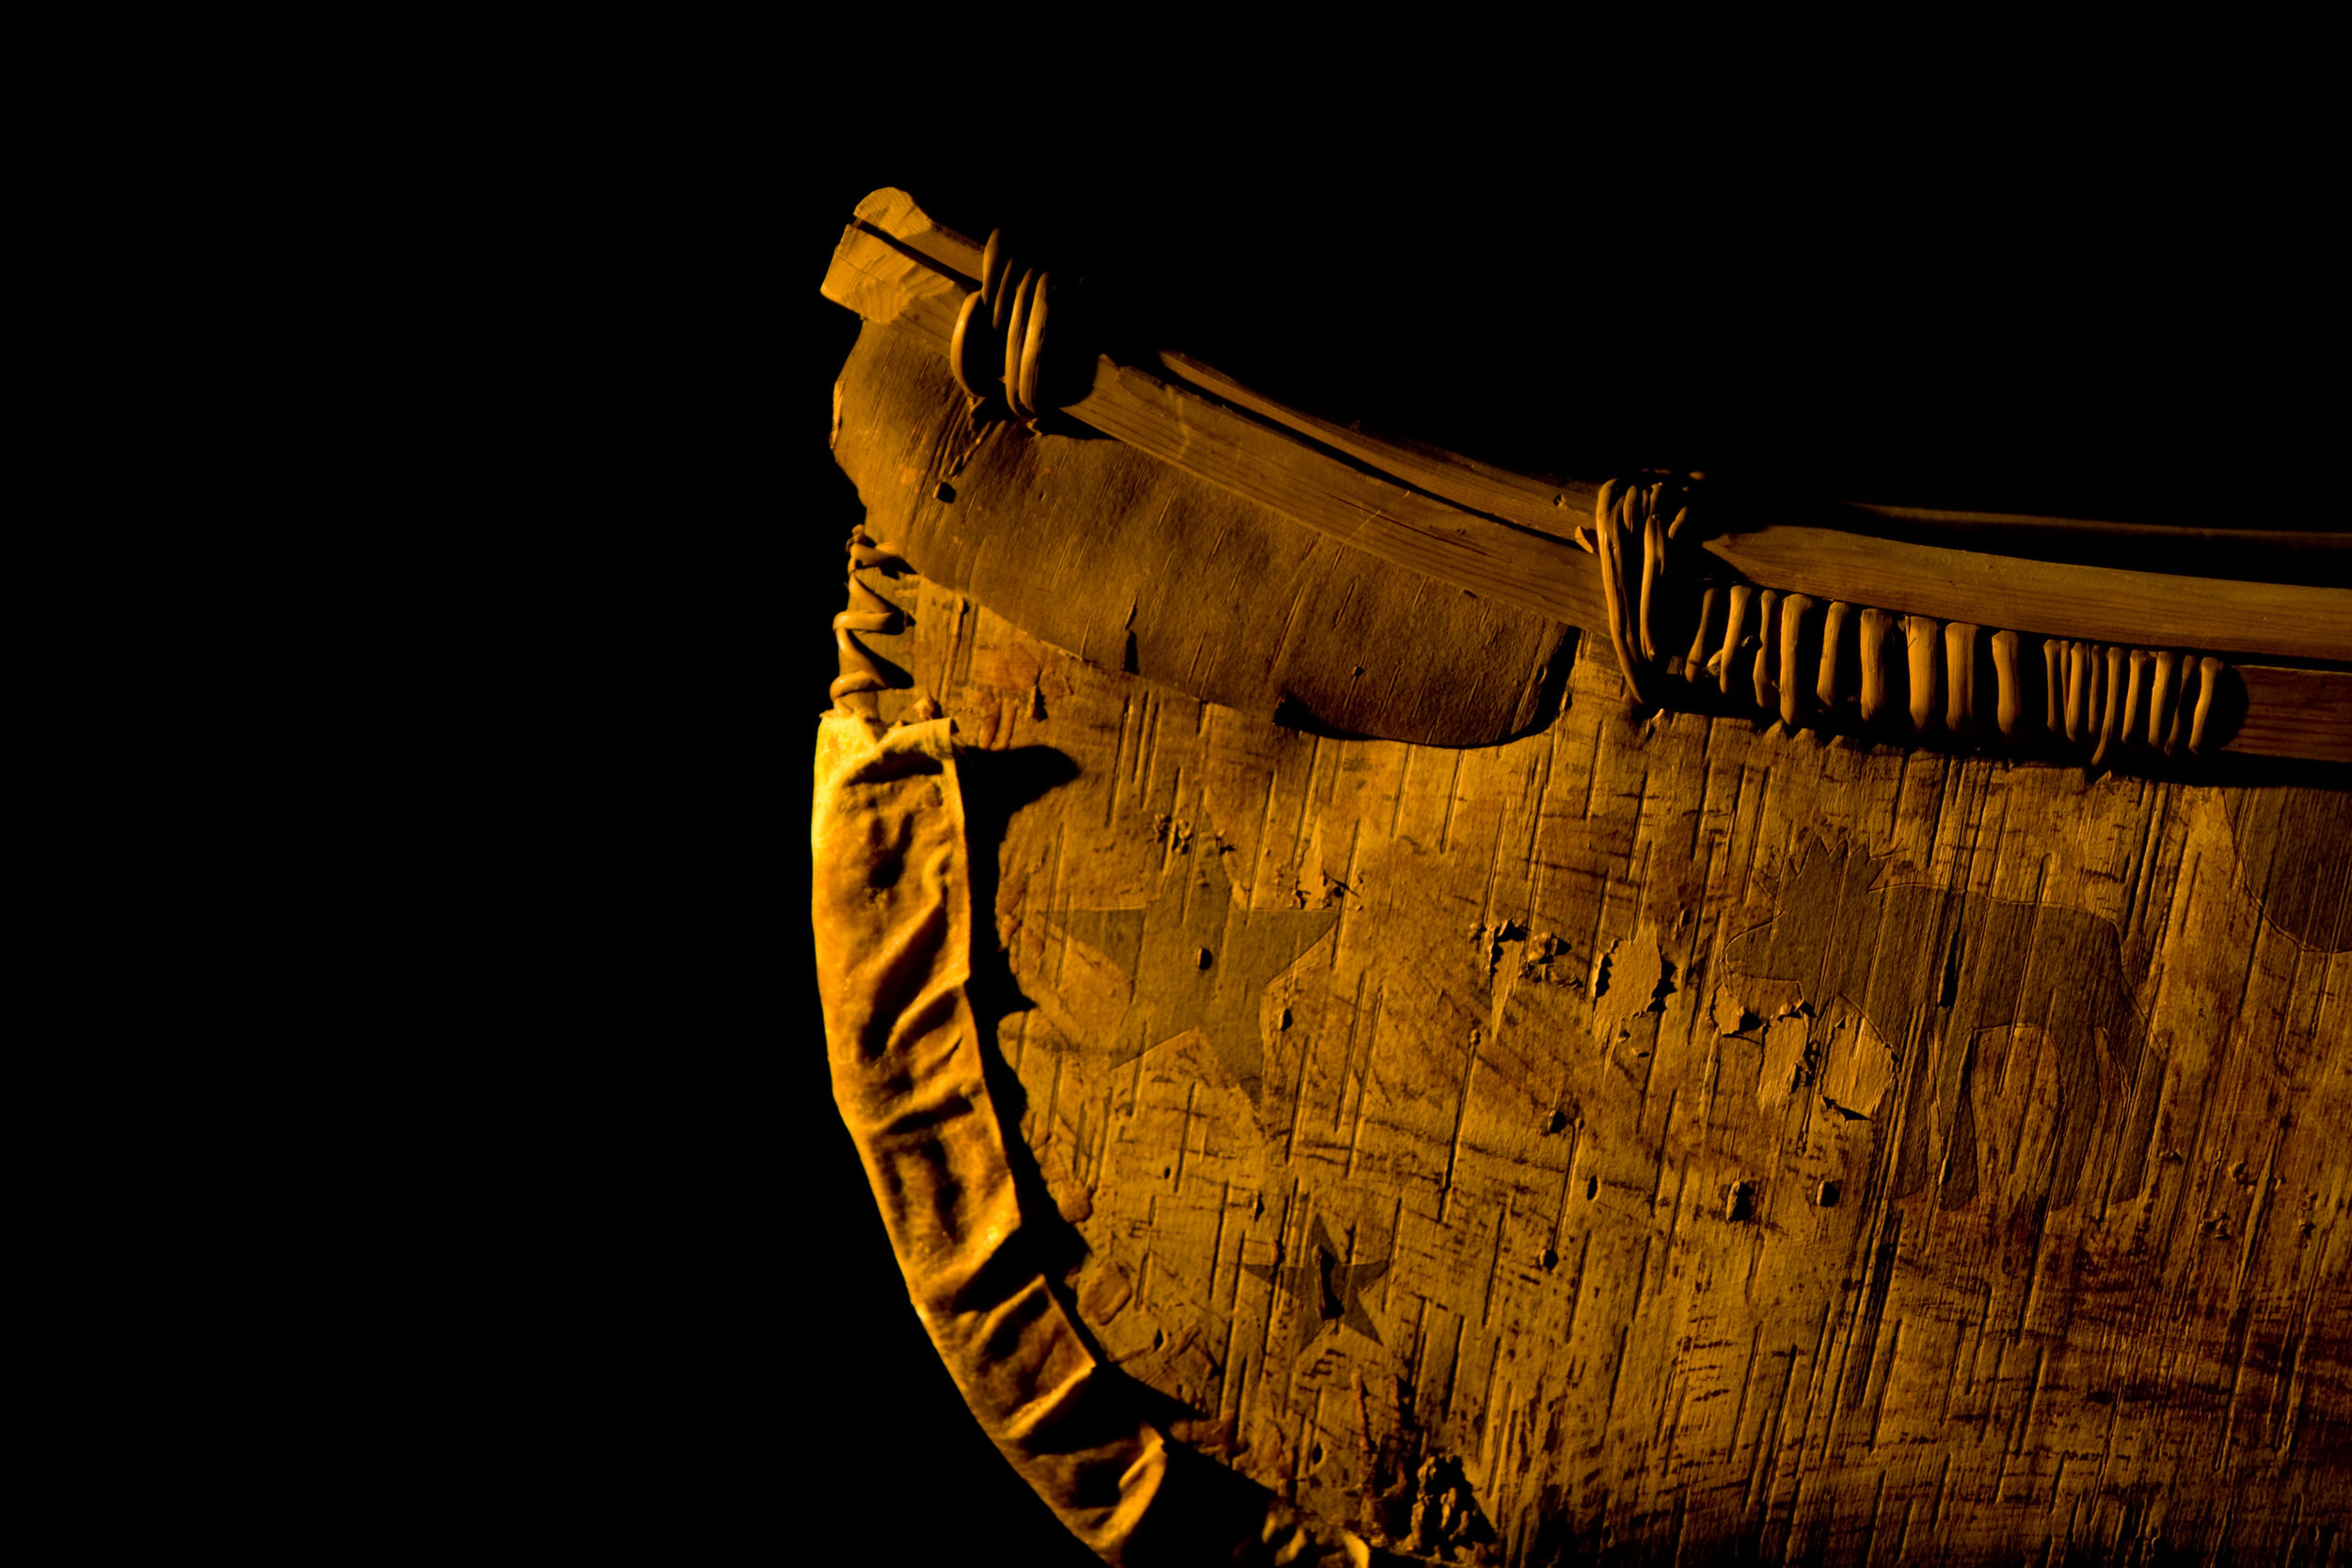 The Walrus - The Push to Bring Home Indigenous Artefacts